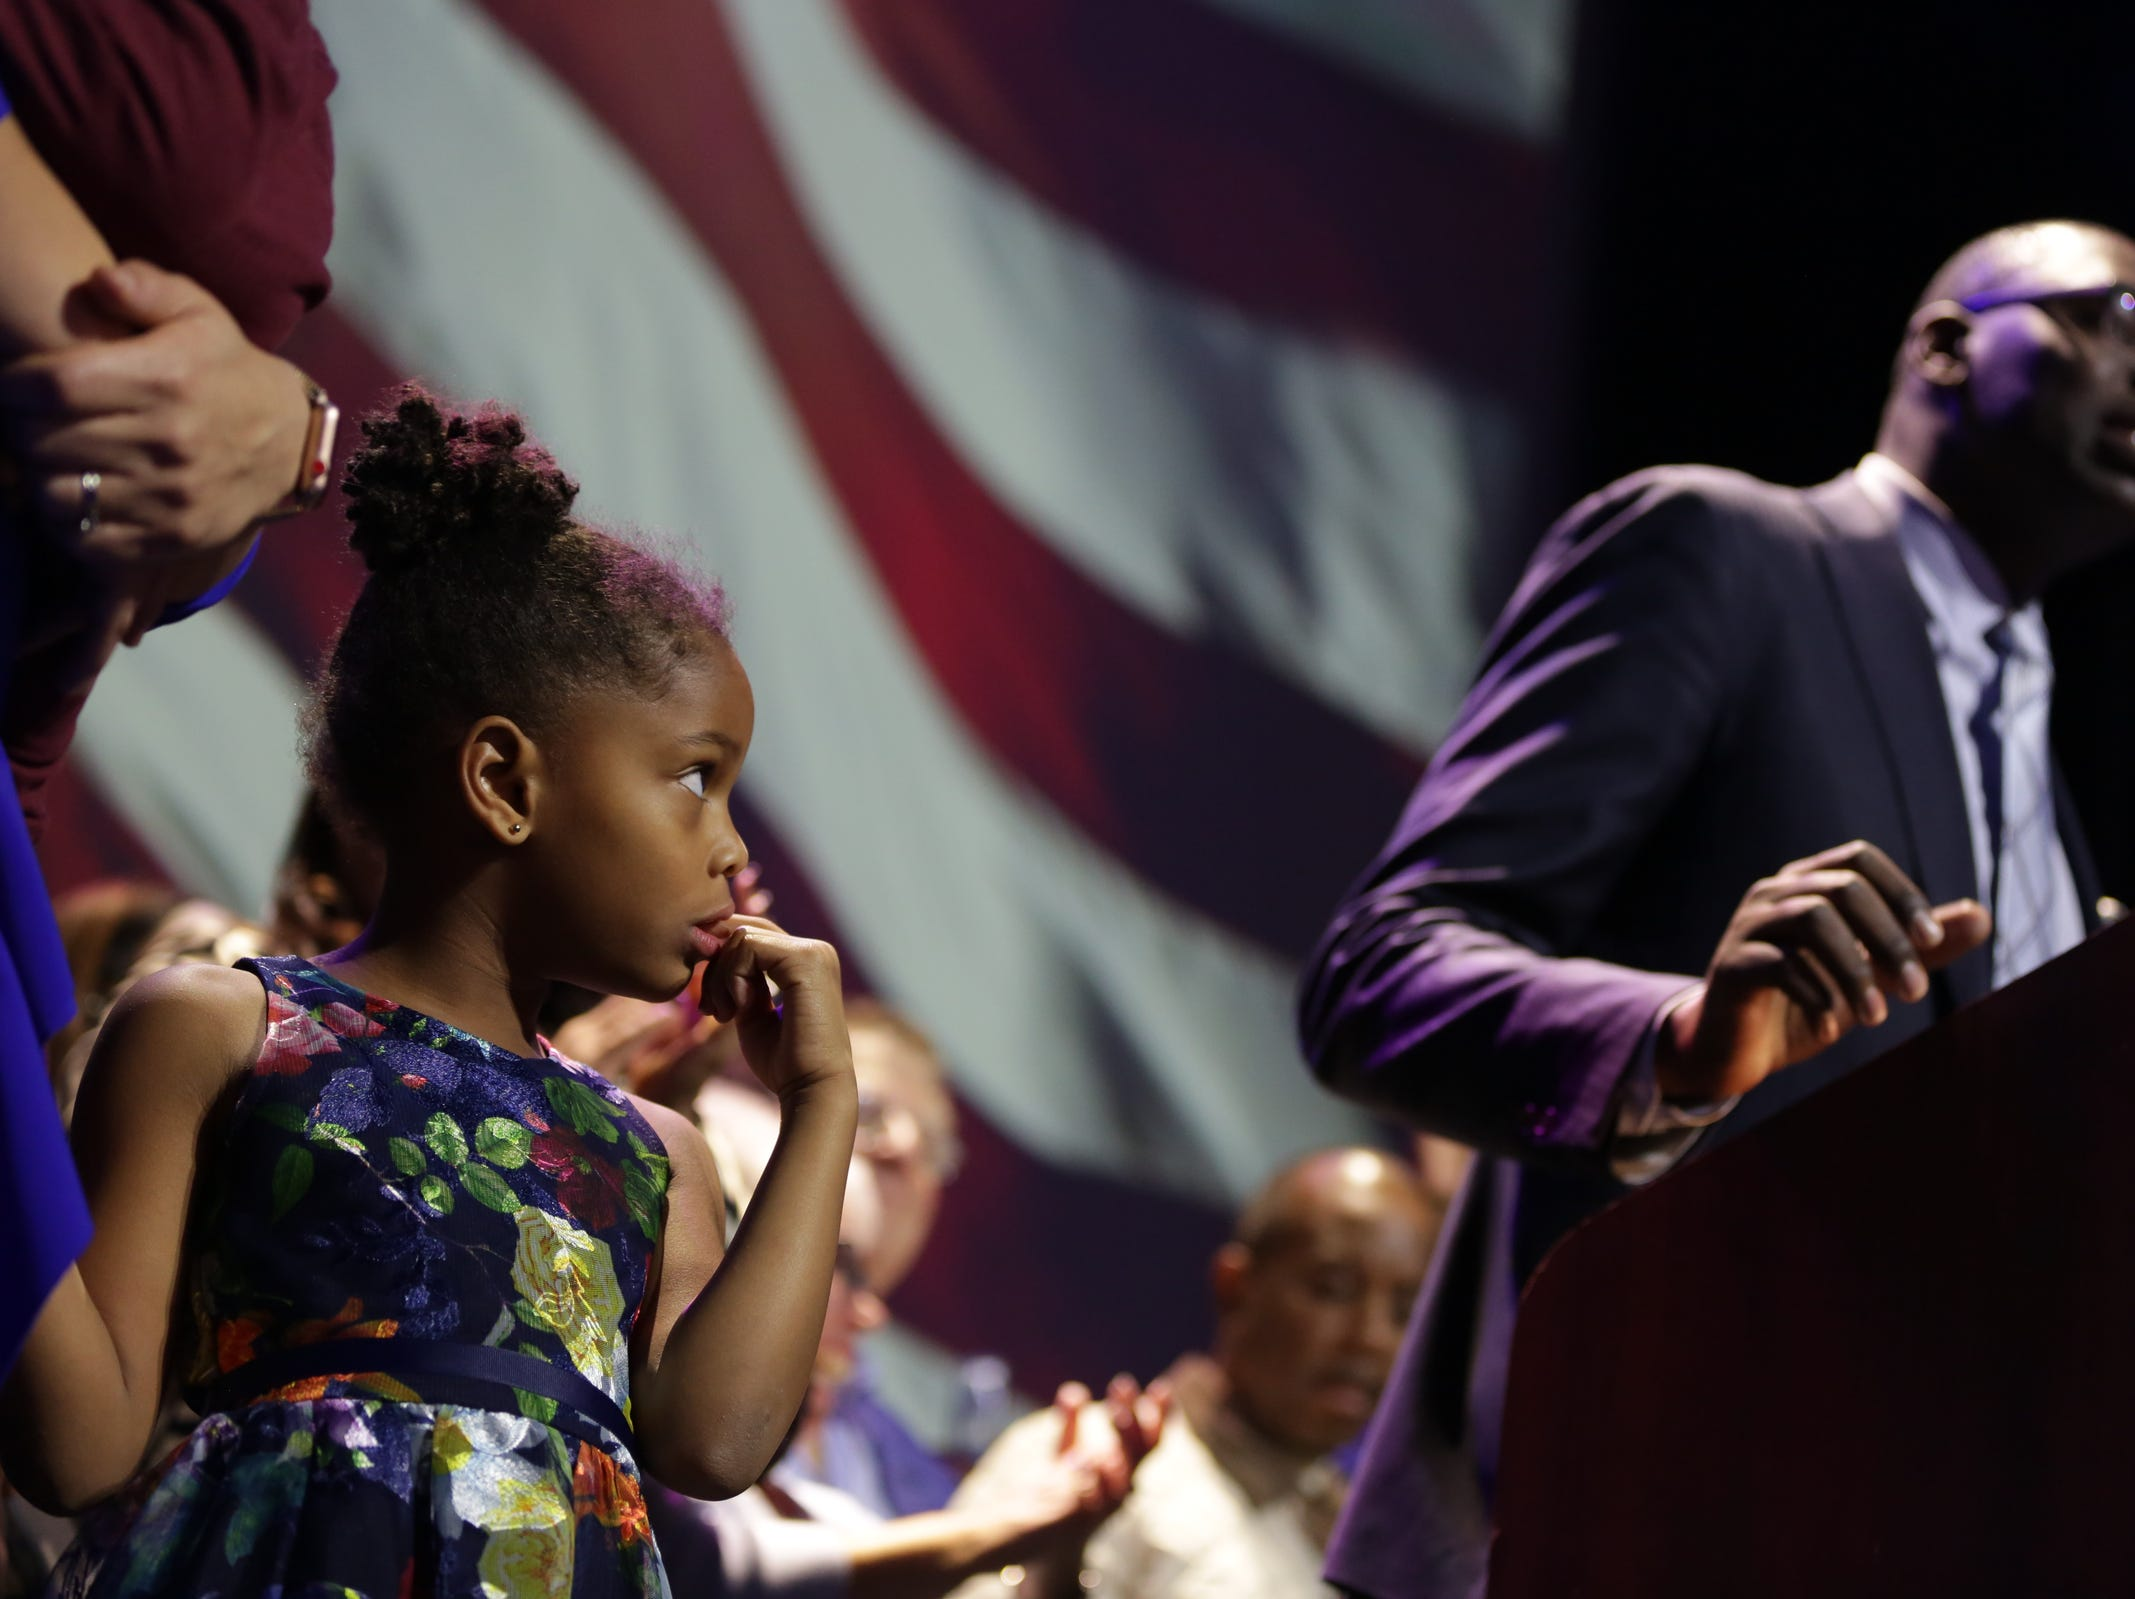 Garlin Gilchrist speaks to the crowd as his daughter looks on while celebrating his victory as Lieutenant governor with Gretchen Whitmer as governor during a celebration at MotorCity Casino's Sound Board in Detroit on Tuesday, Nov. 6, 2018.